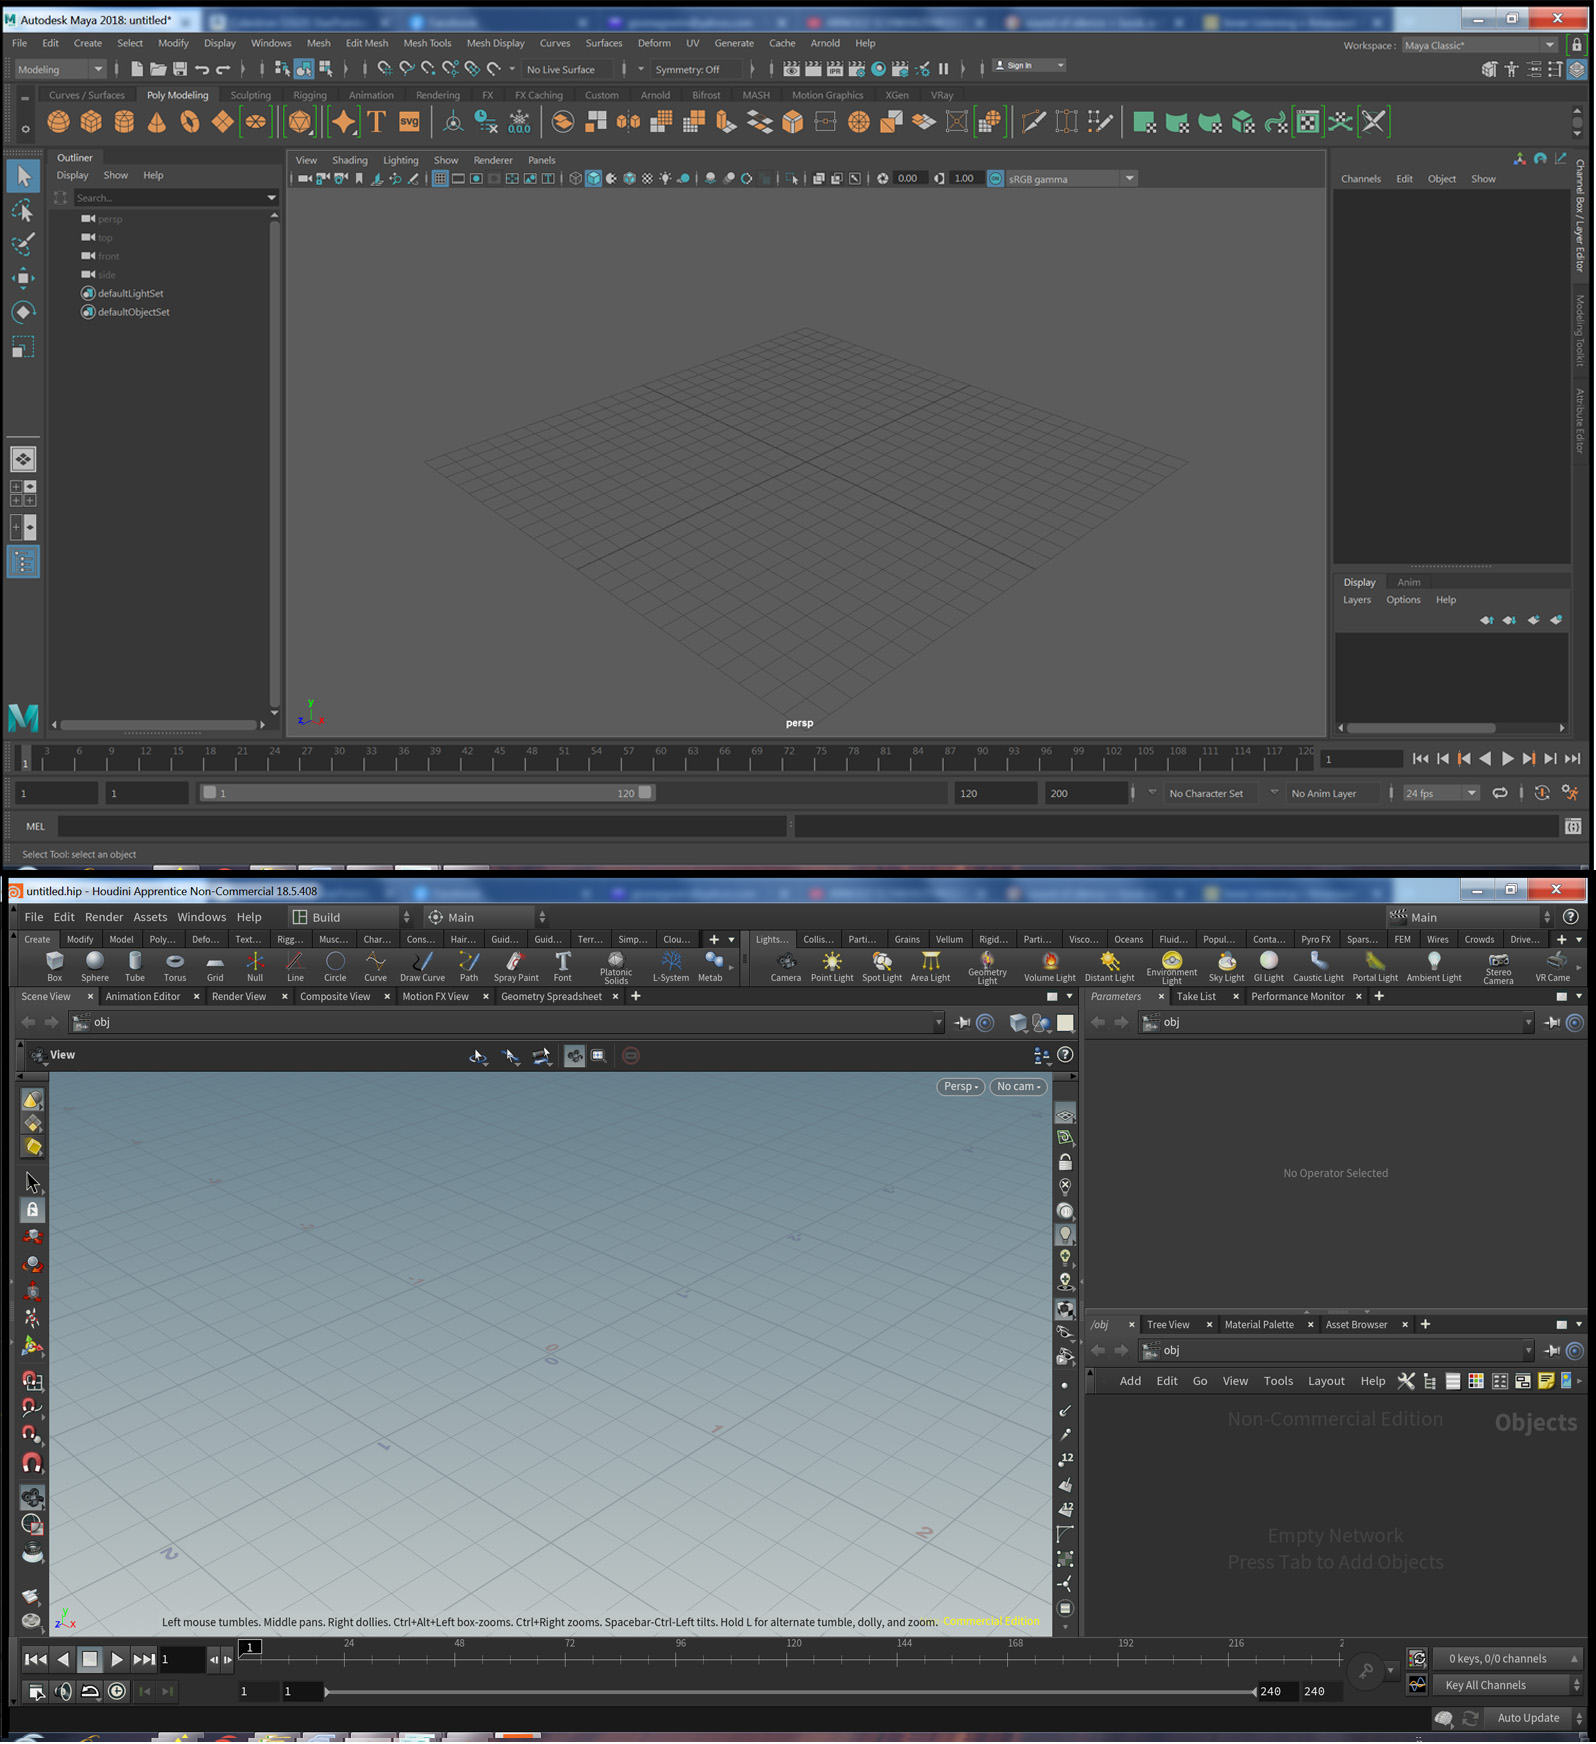 The Maya and Houdini interface compared